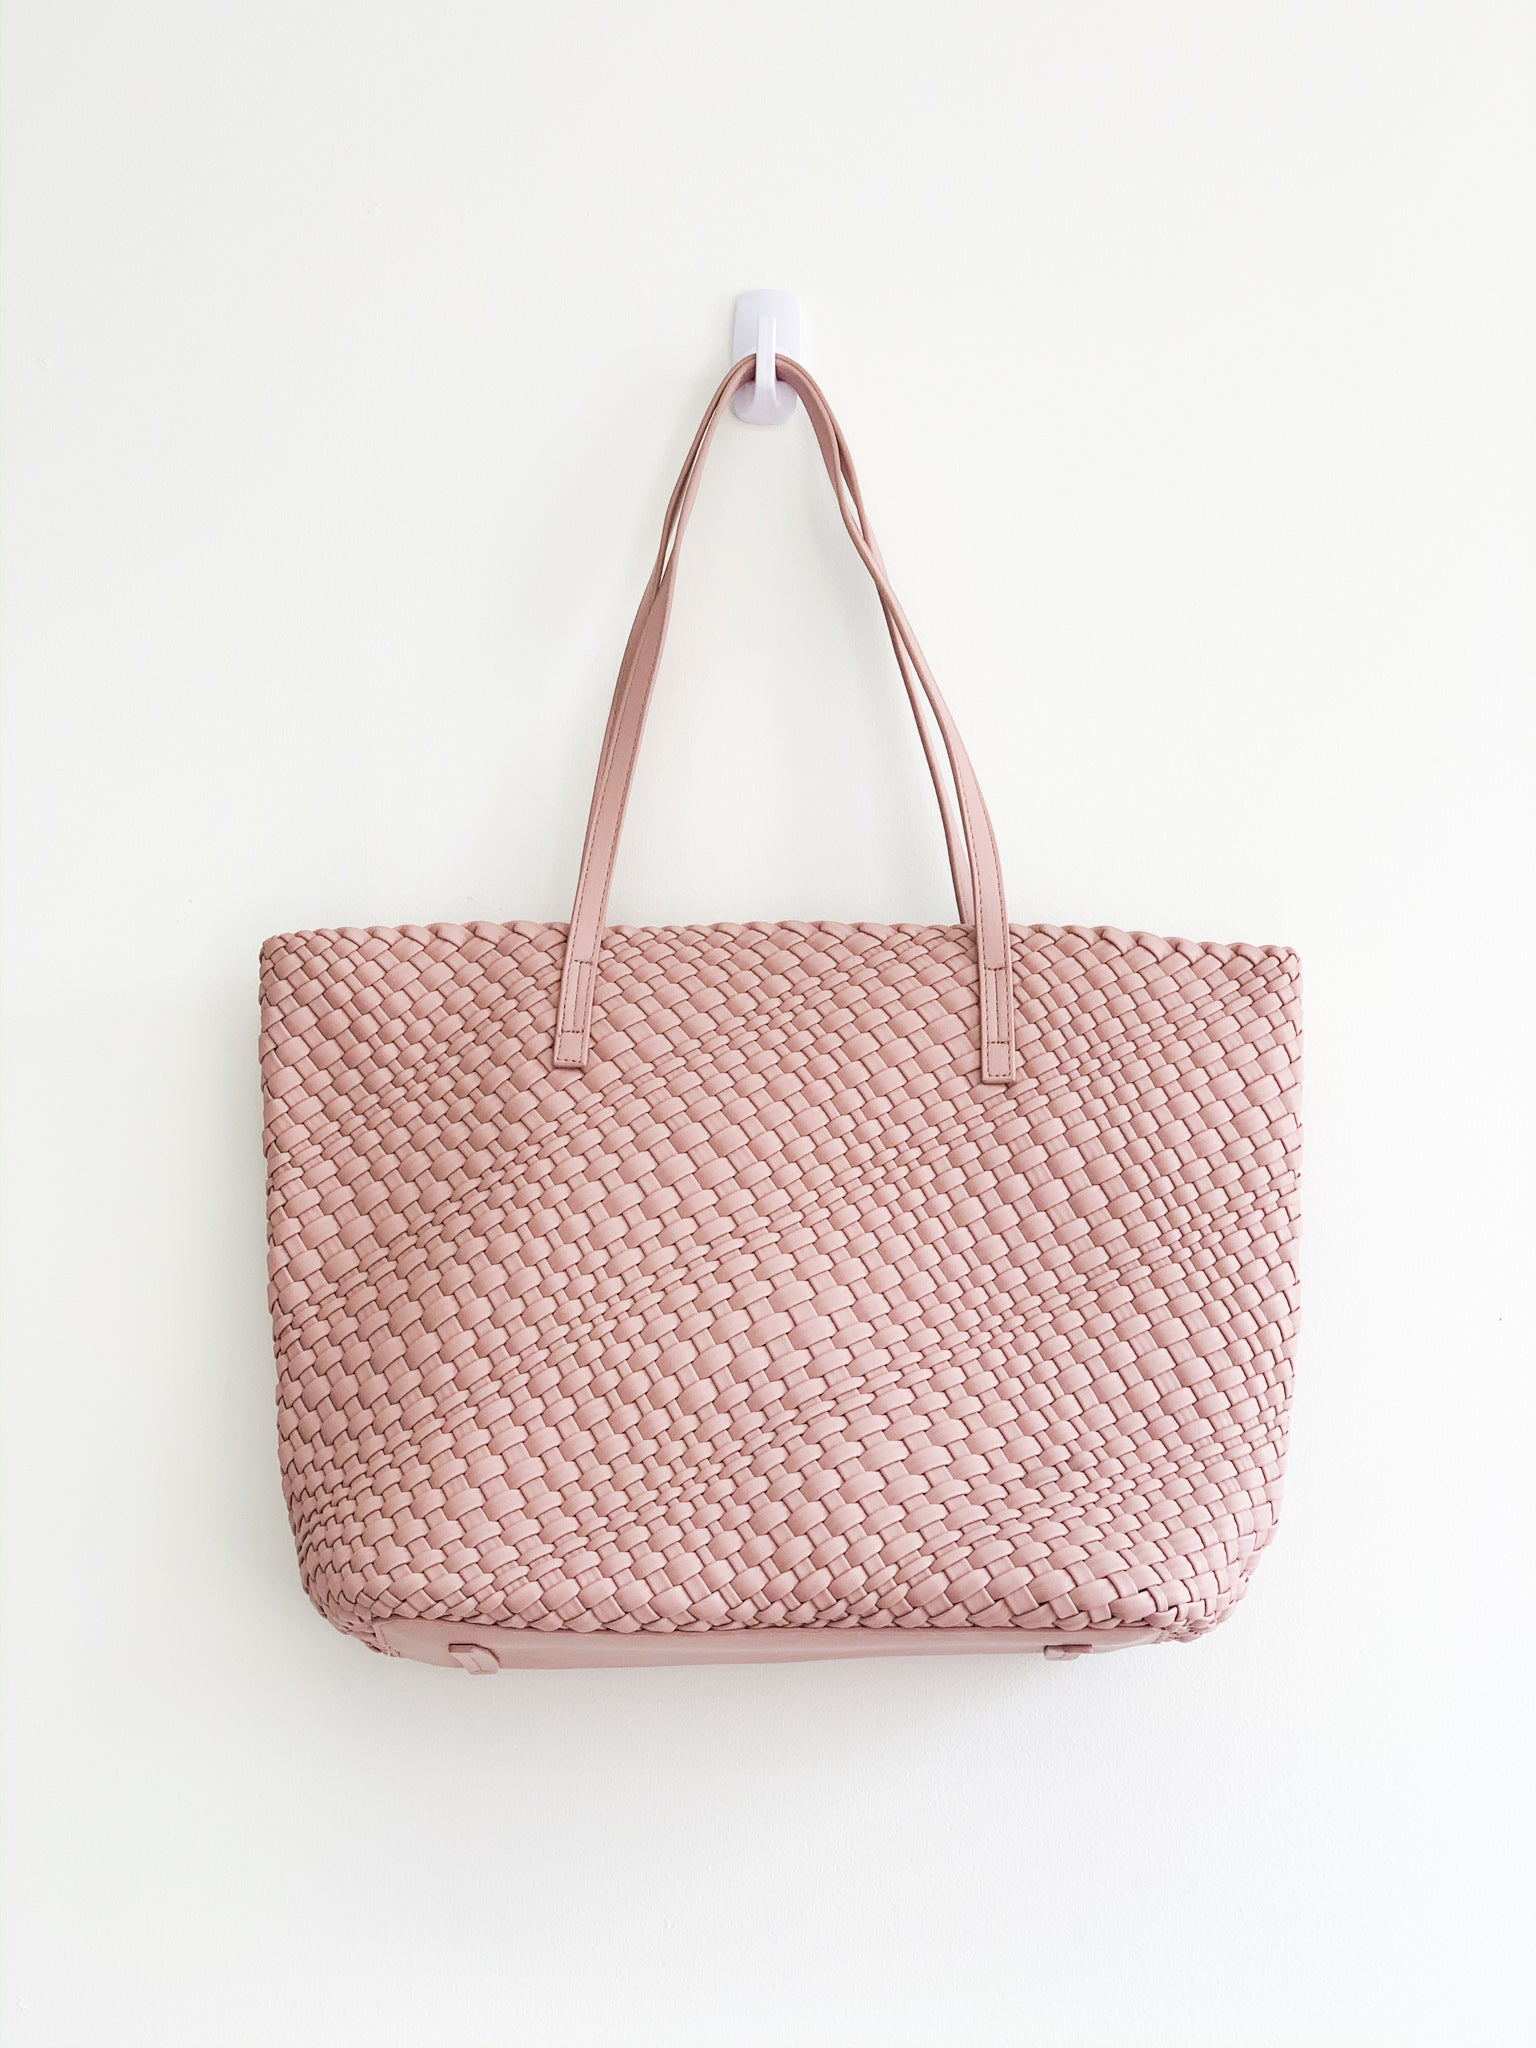 BOLD JOURNEY BRAIDED TOTE IN PINK